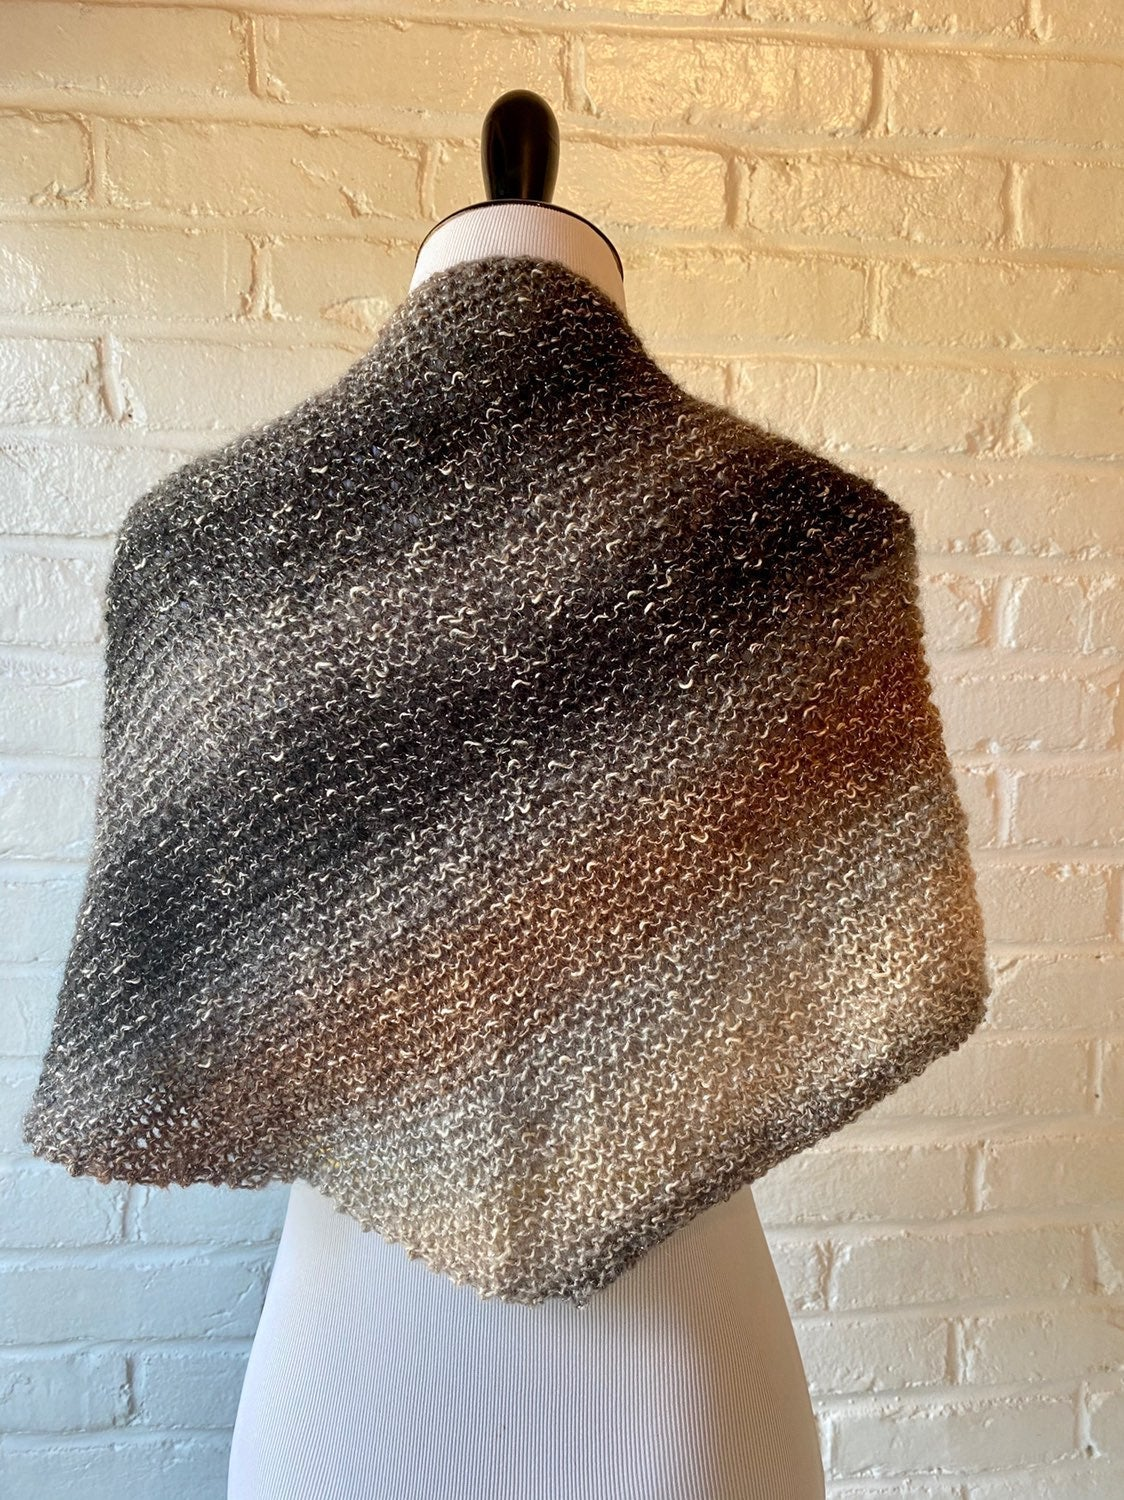 Handmade Knit Cotton Shawl